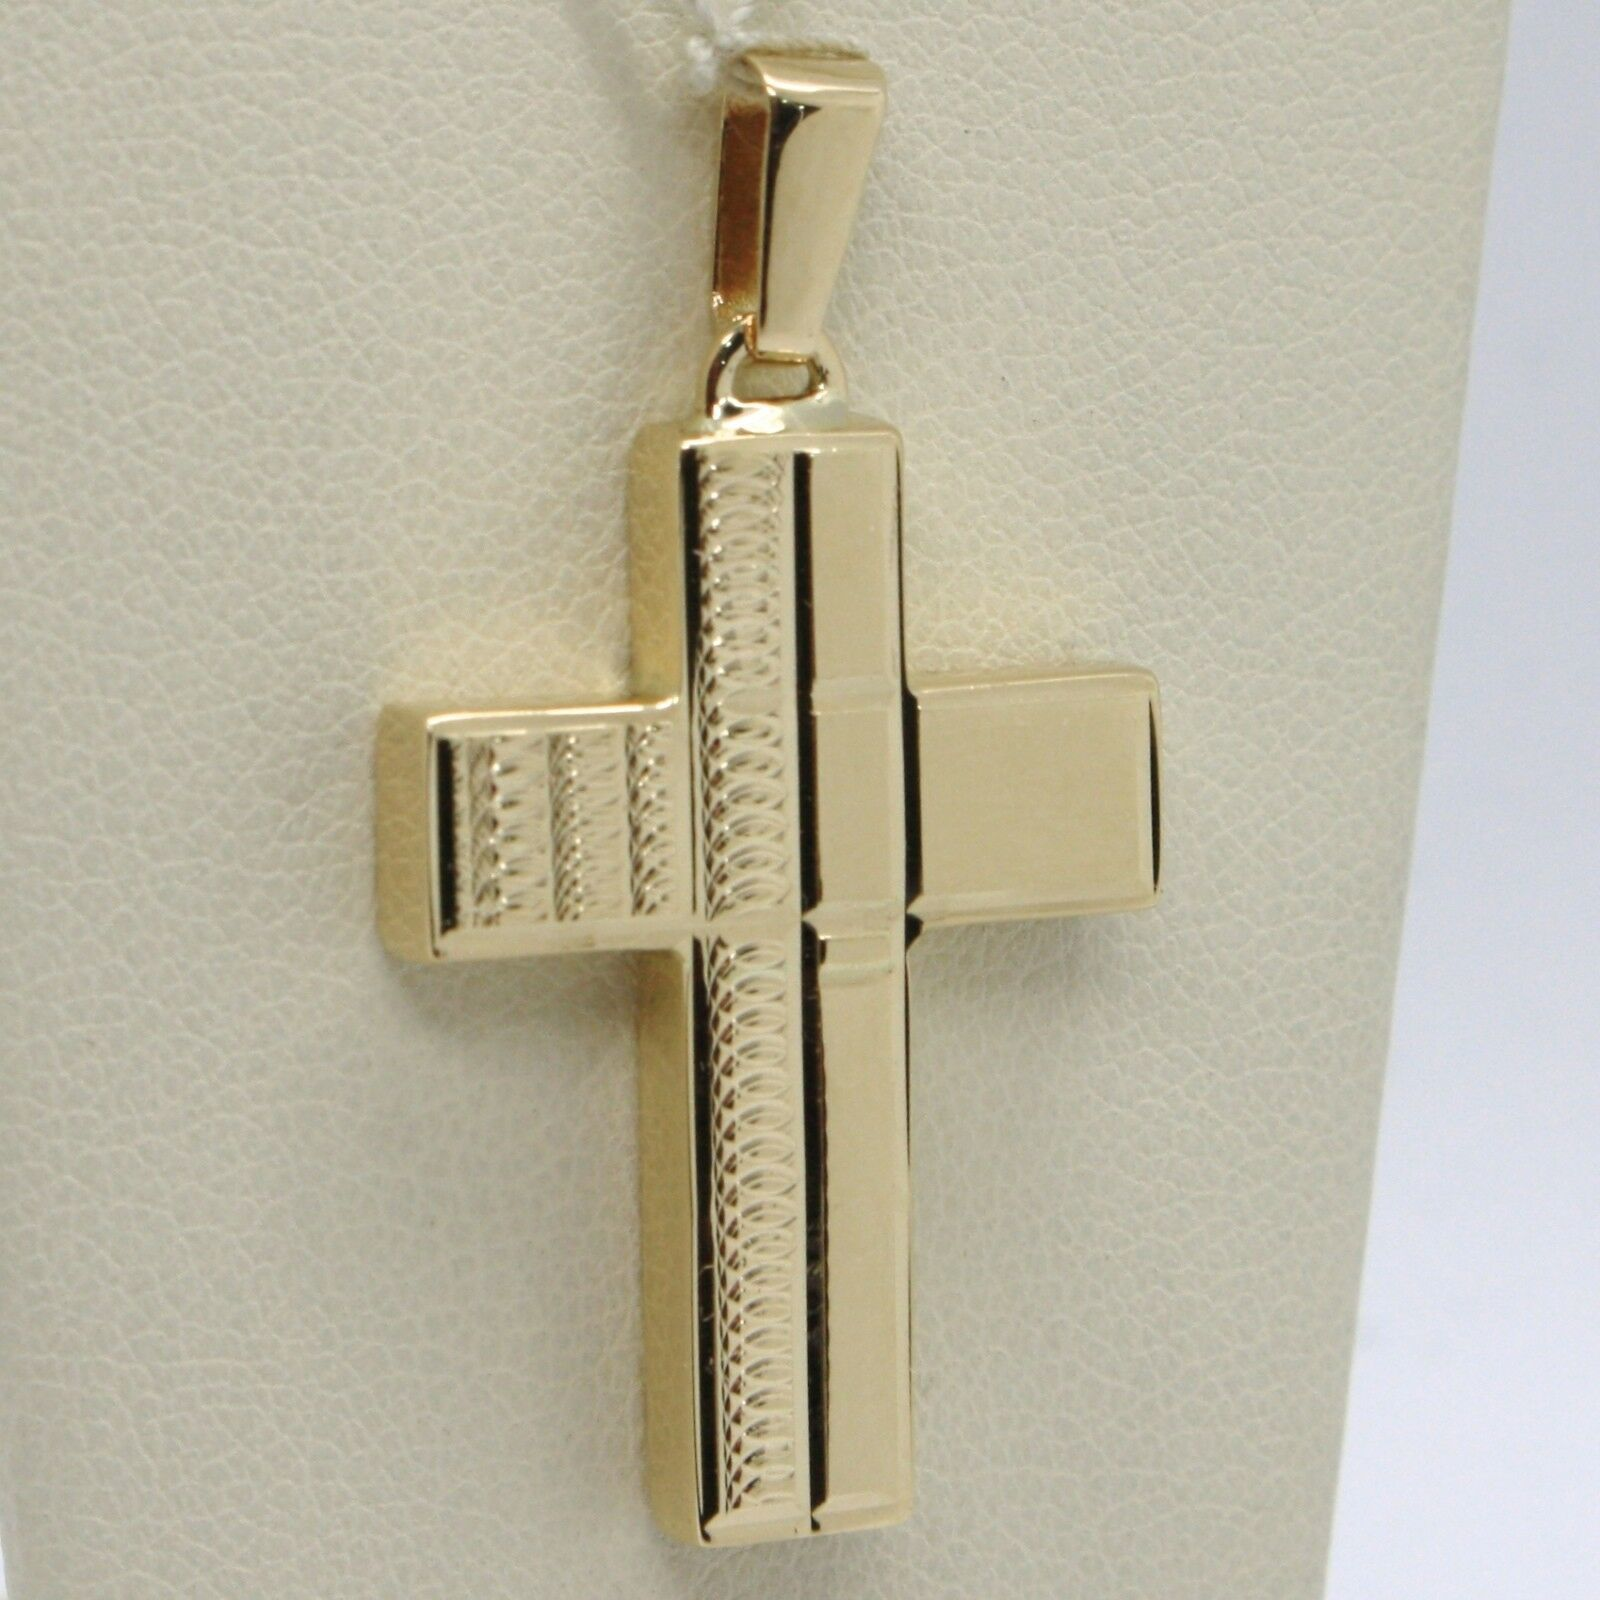 18K YELLOW GOLD PENDANT SQUARE STYLIZED CROSS, WORKED, SMOOTH, MADE IN ITALY